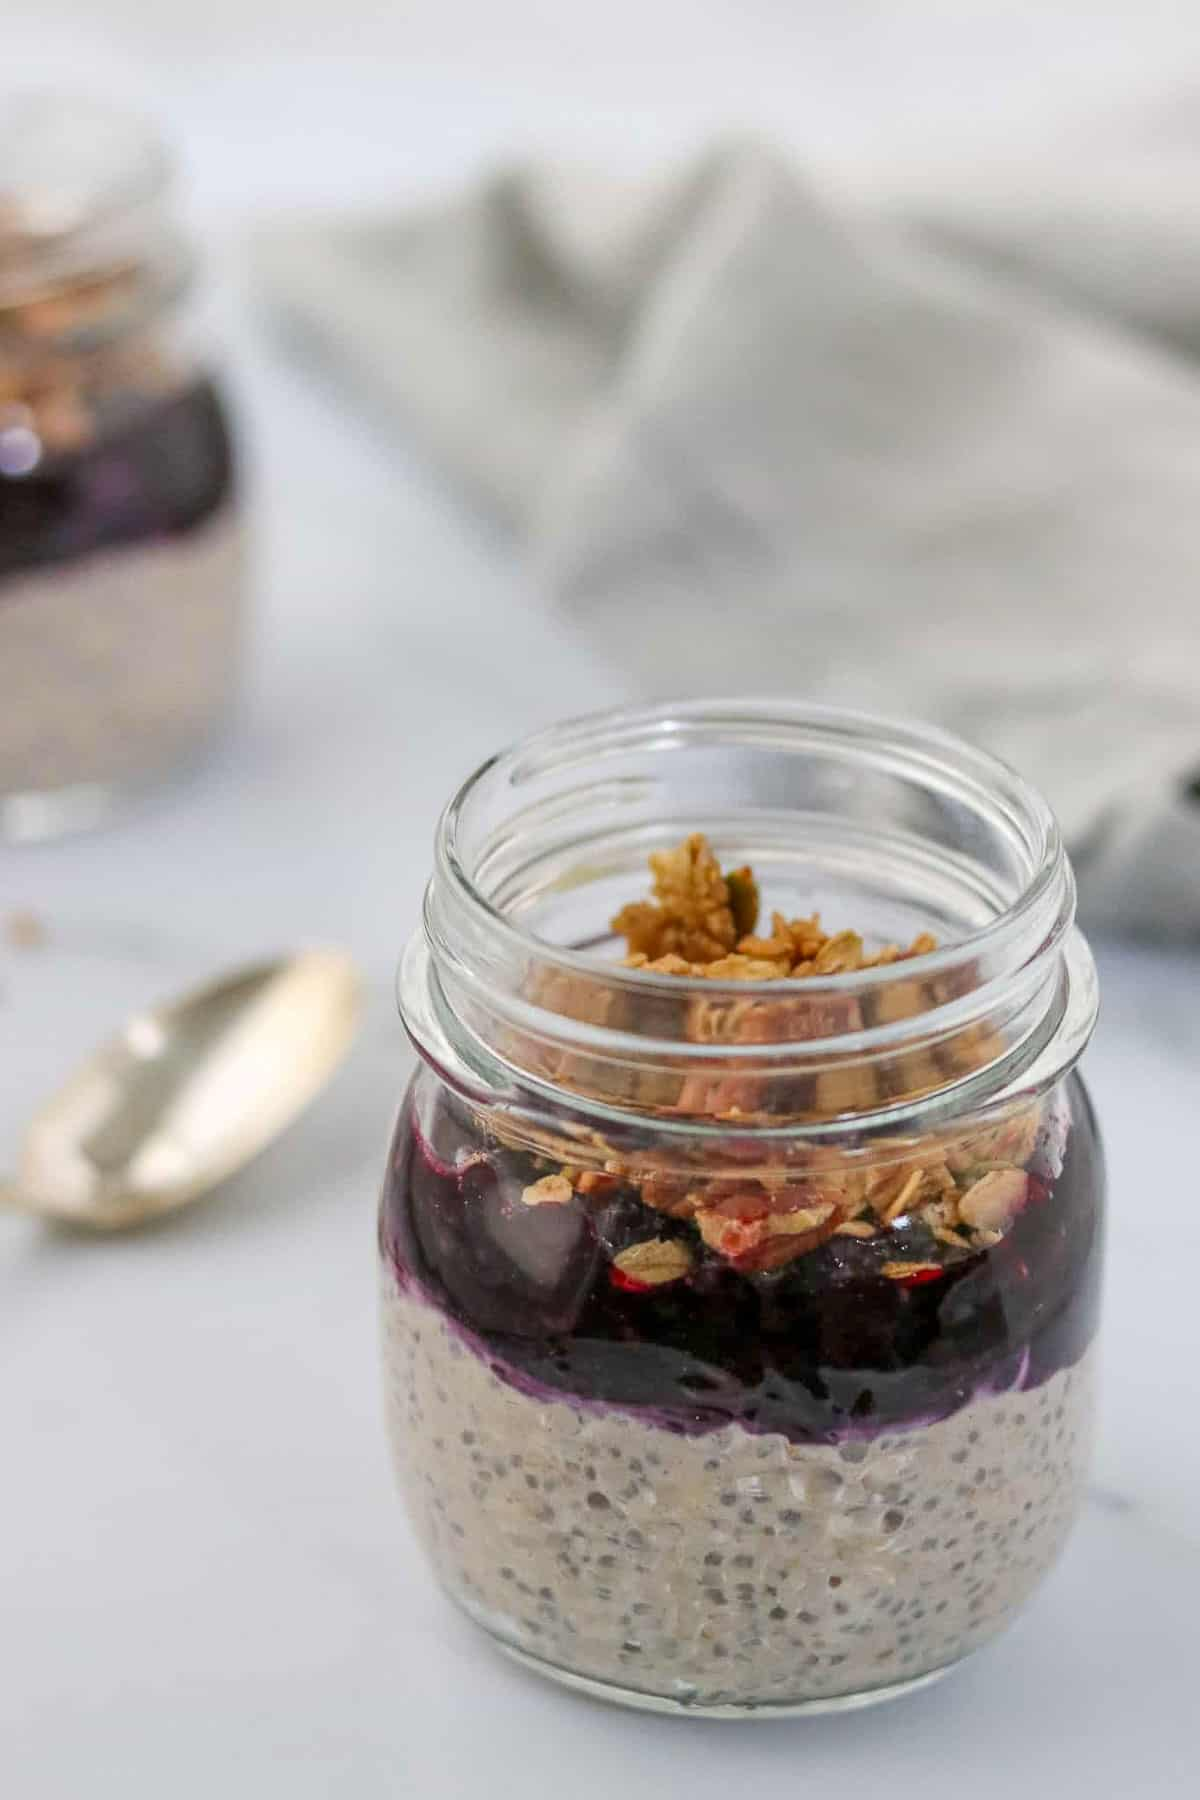 Overnight oats topped with blueberry compote and granola.